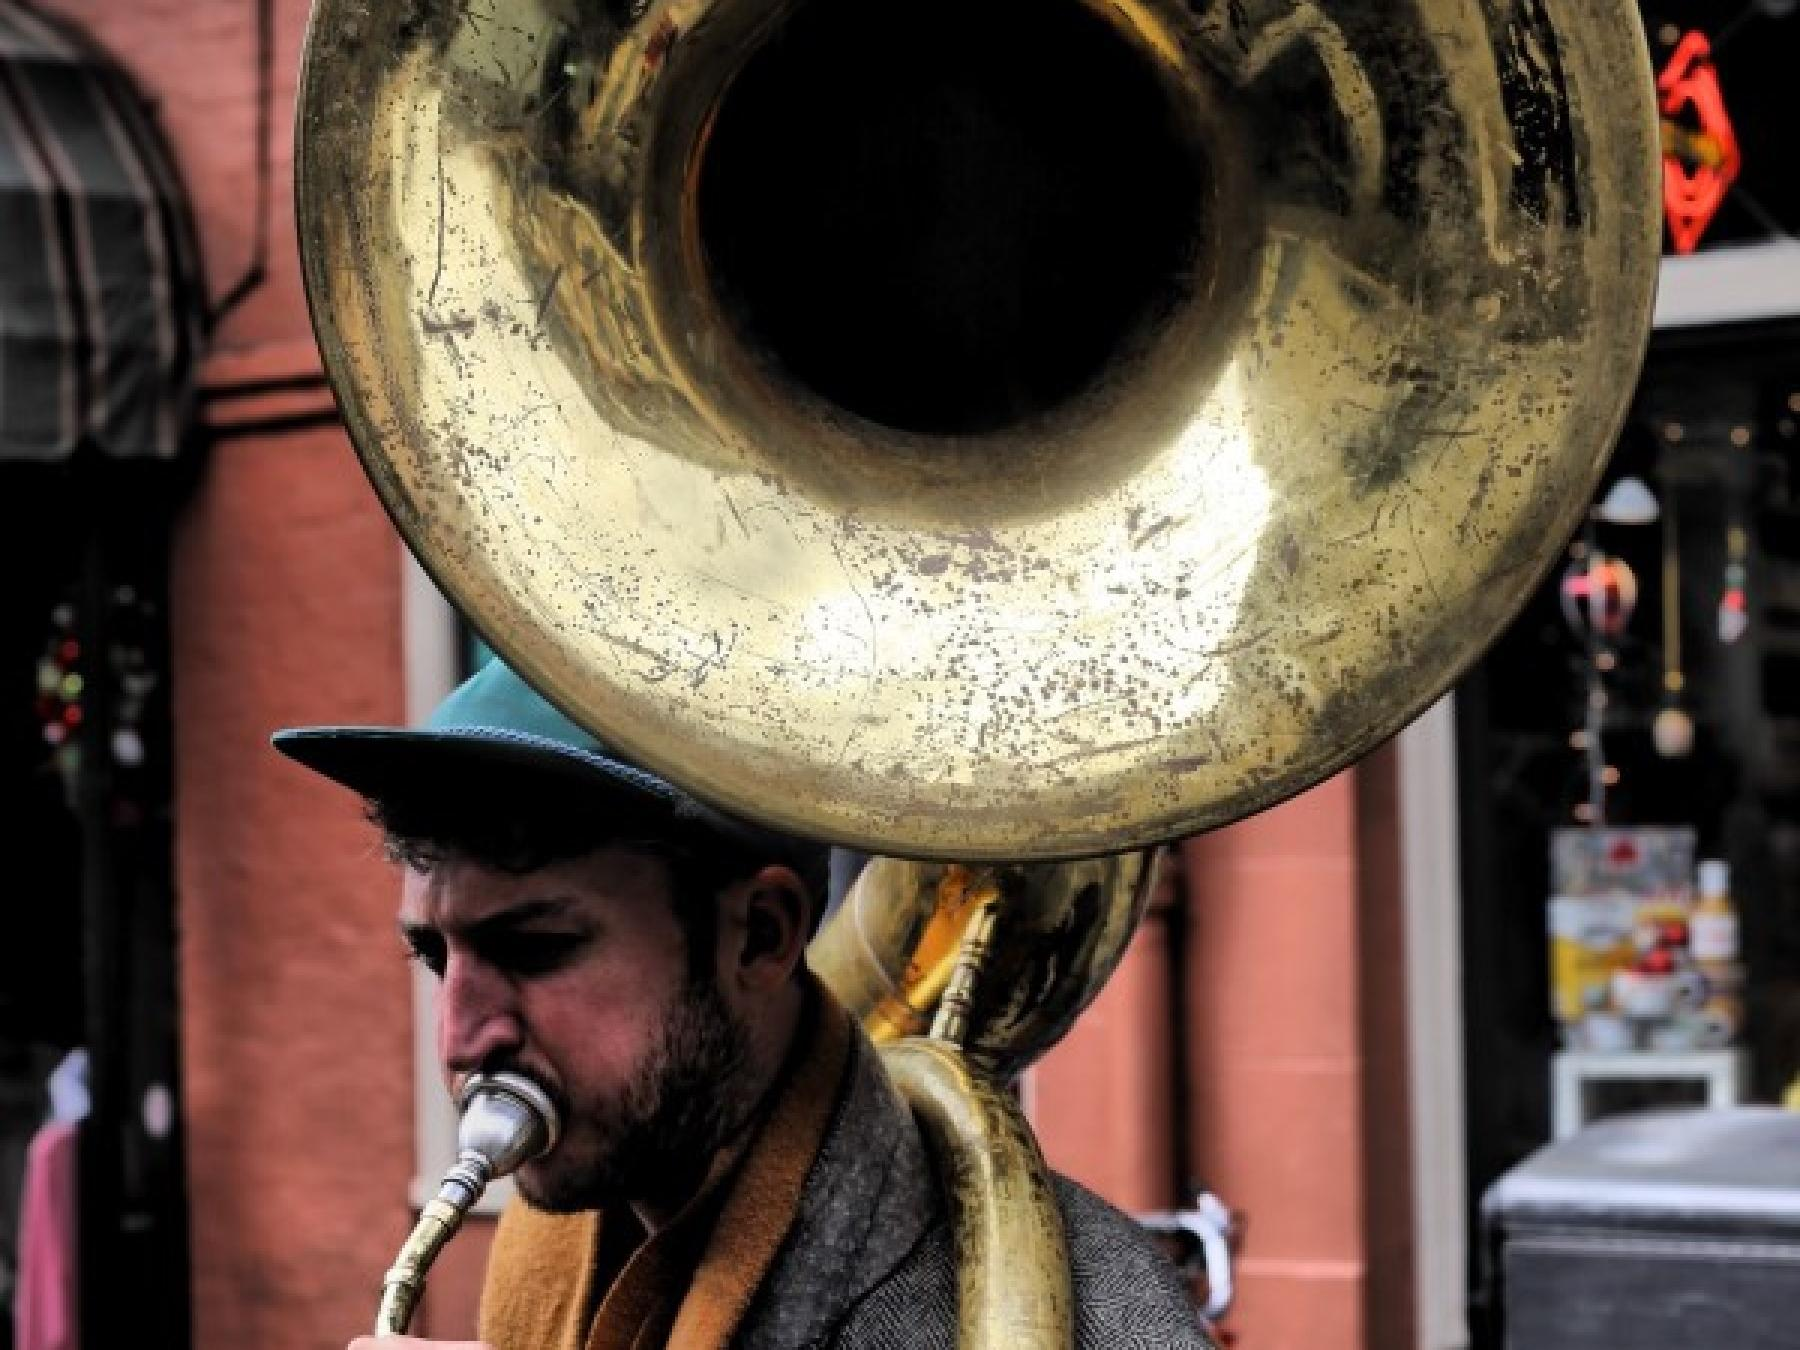 A man playing a tuba in the streets near the hotel